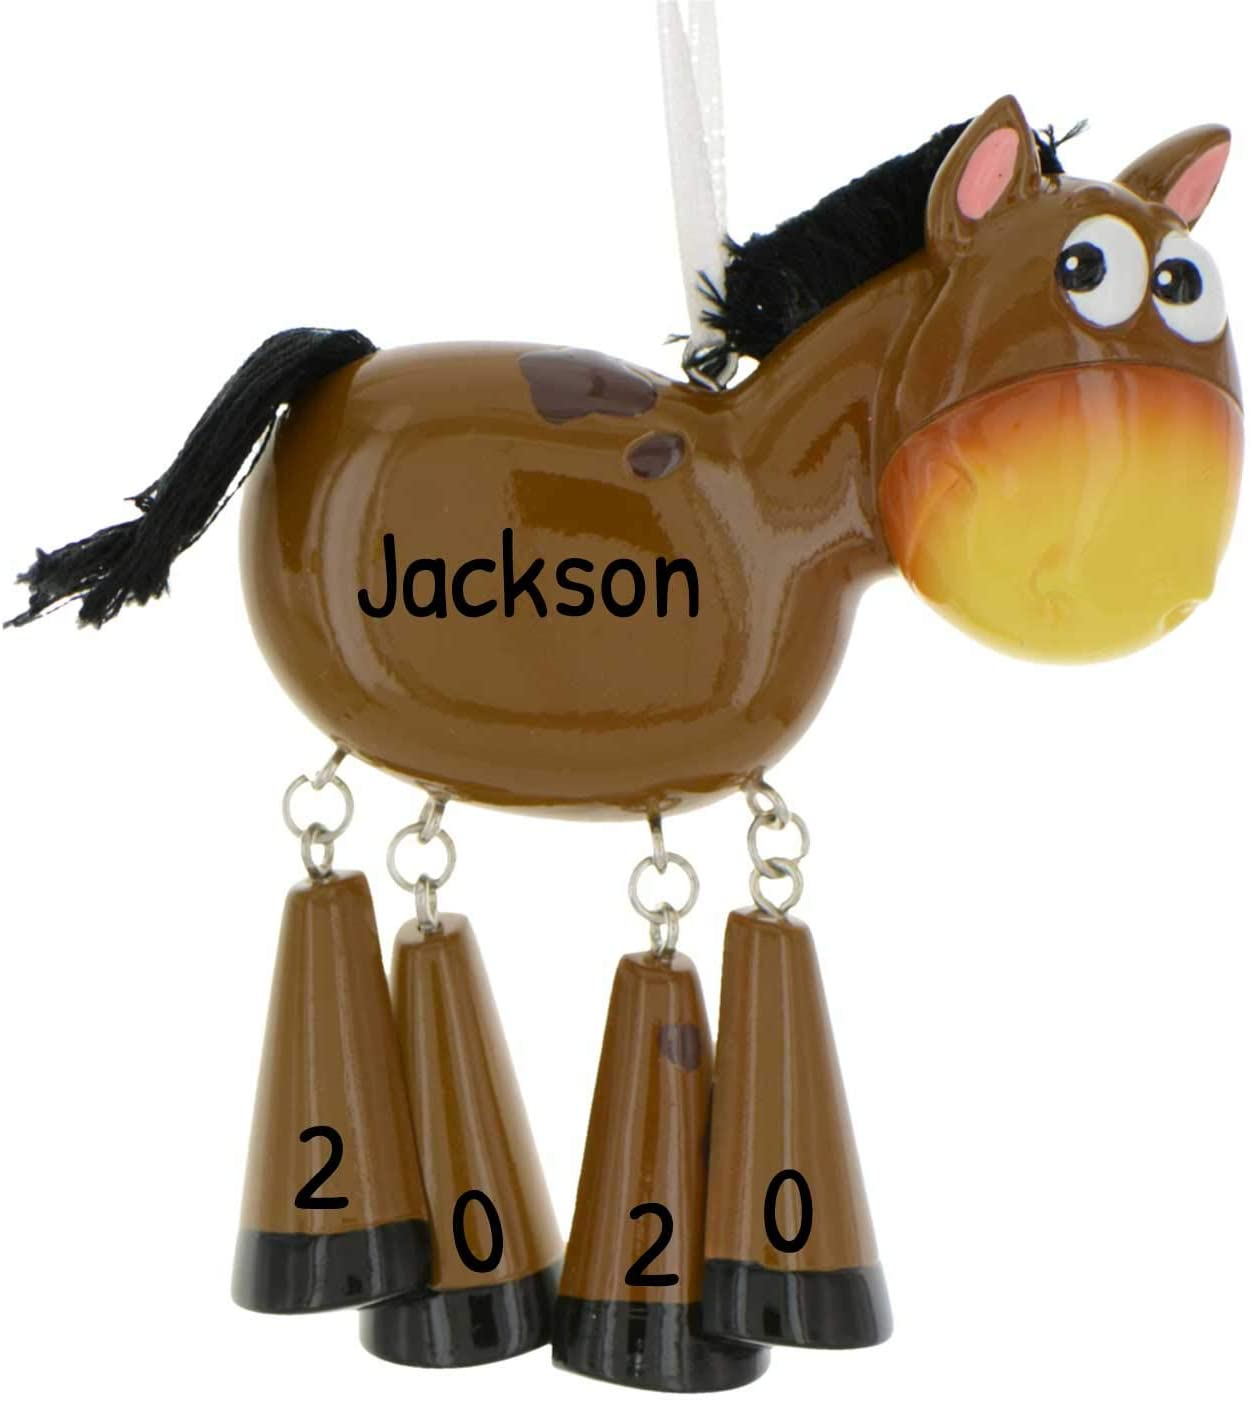 Personalized Farm Animals Christmas Tree Ornament 2020 - Brown Horse Dangling Legs Farmer Collection Industry Barnyard Ride Barrel Ridding Toy Gift Year - Free Customization